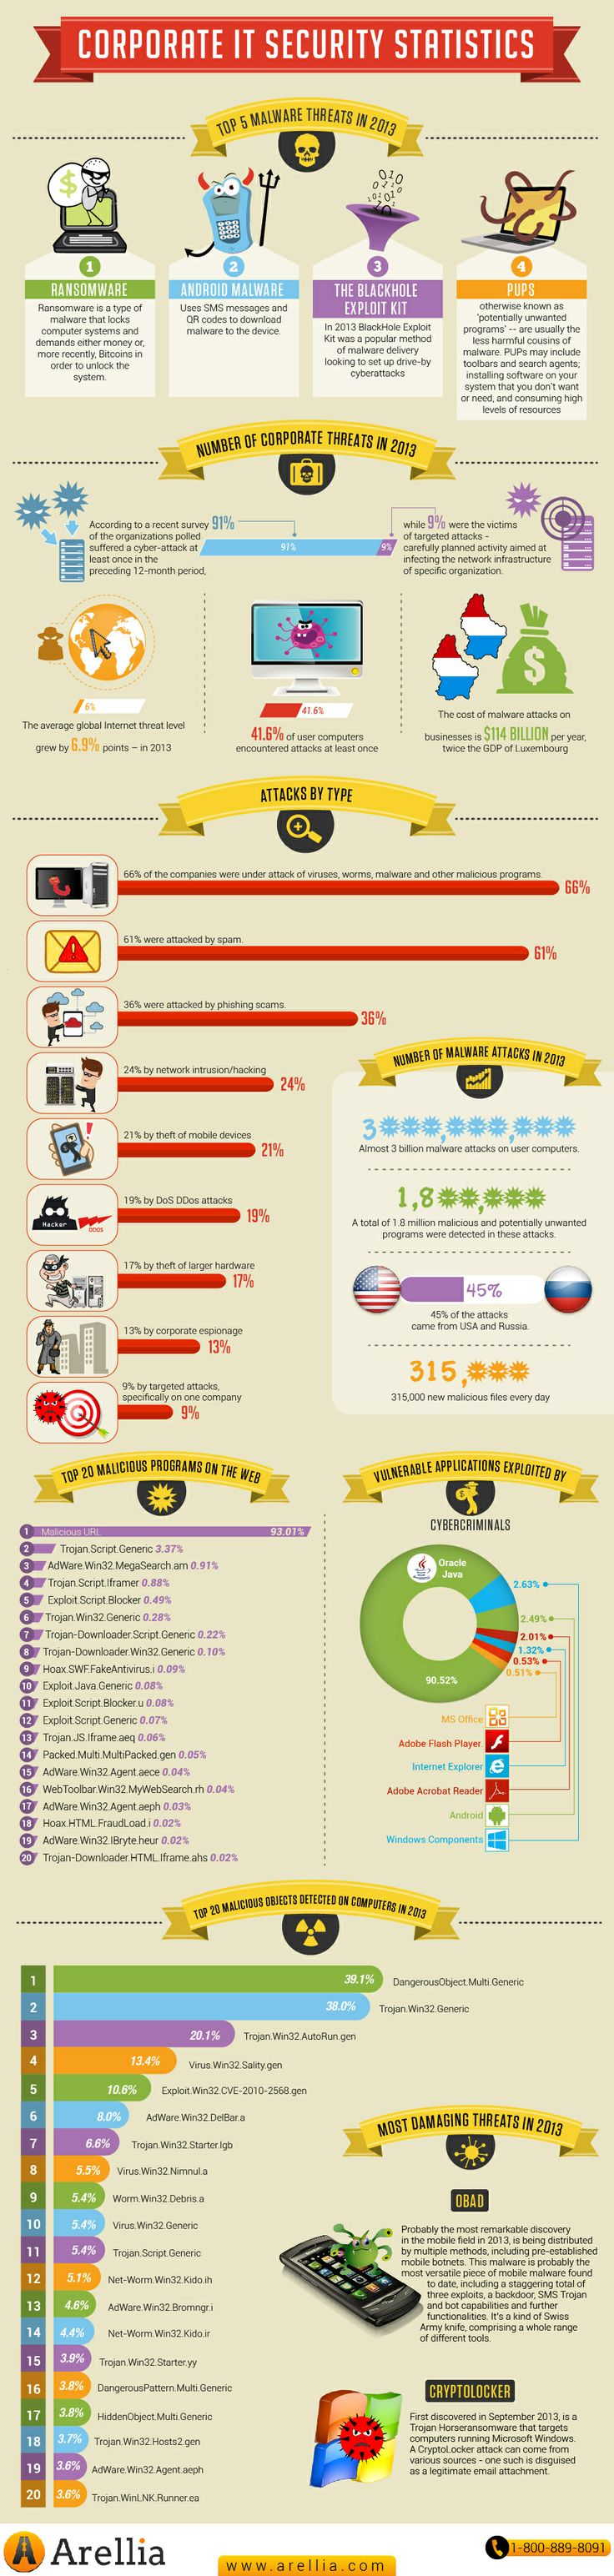 Corporate cyber security stats